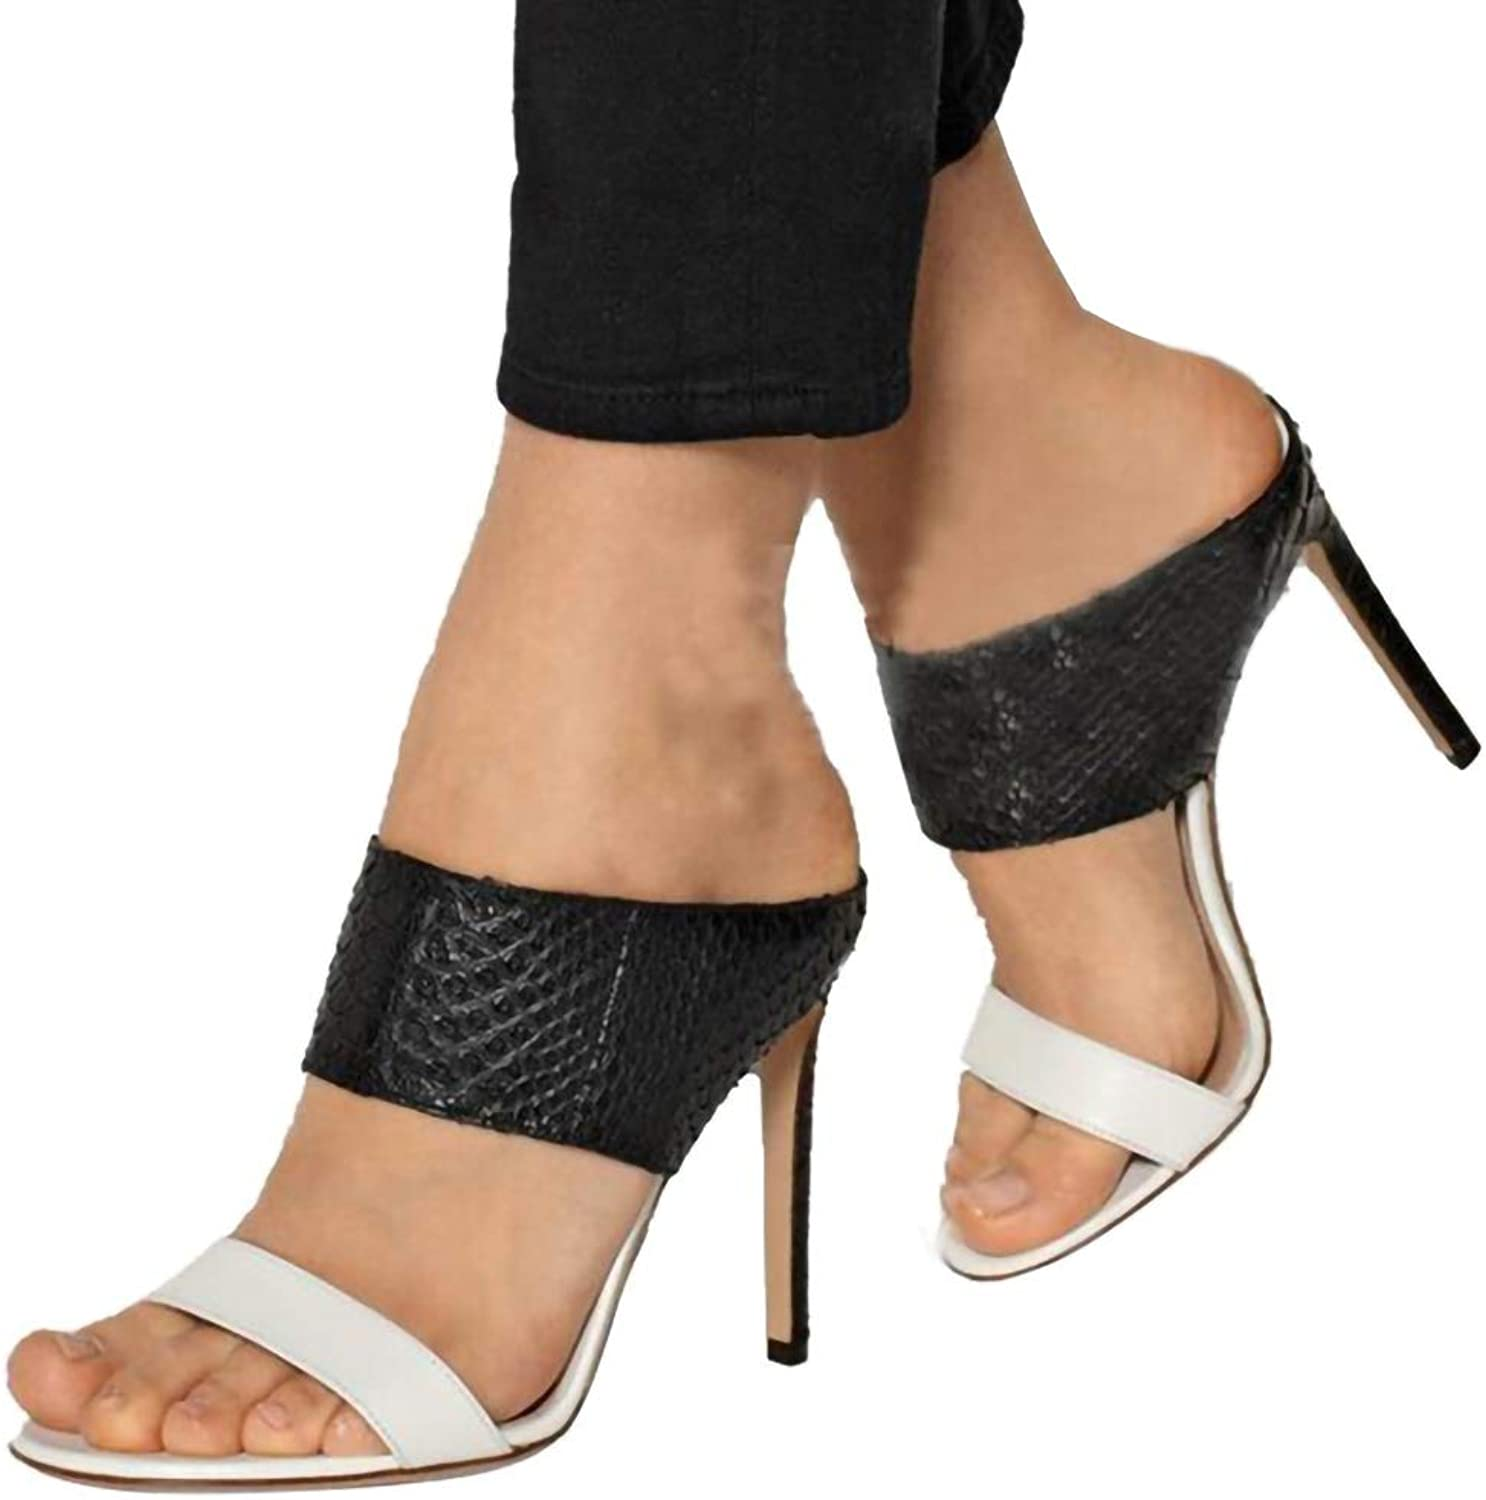 Fashion Women Sandals Slippers, Sexy Thin Heels Sandals Woman Flip Flop Hollow High-Heeled Women shoes Size 35-42,Black,7.5US